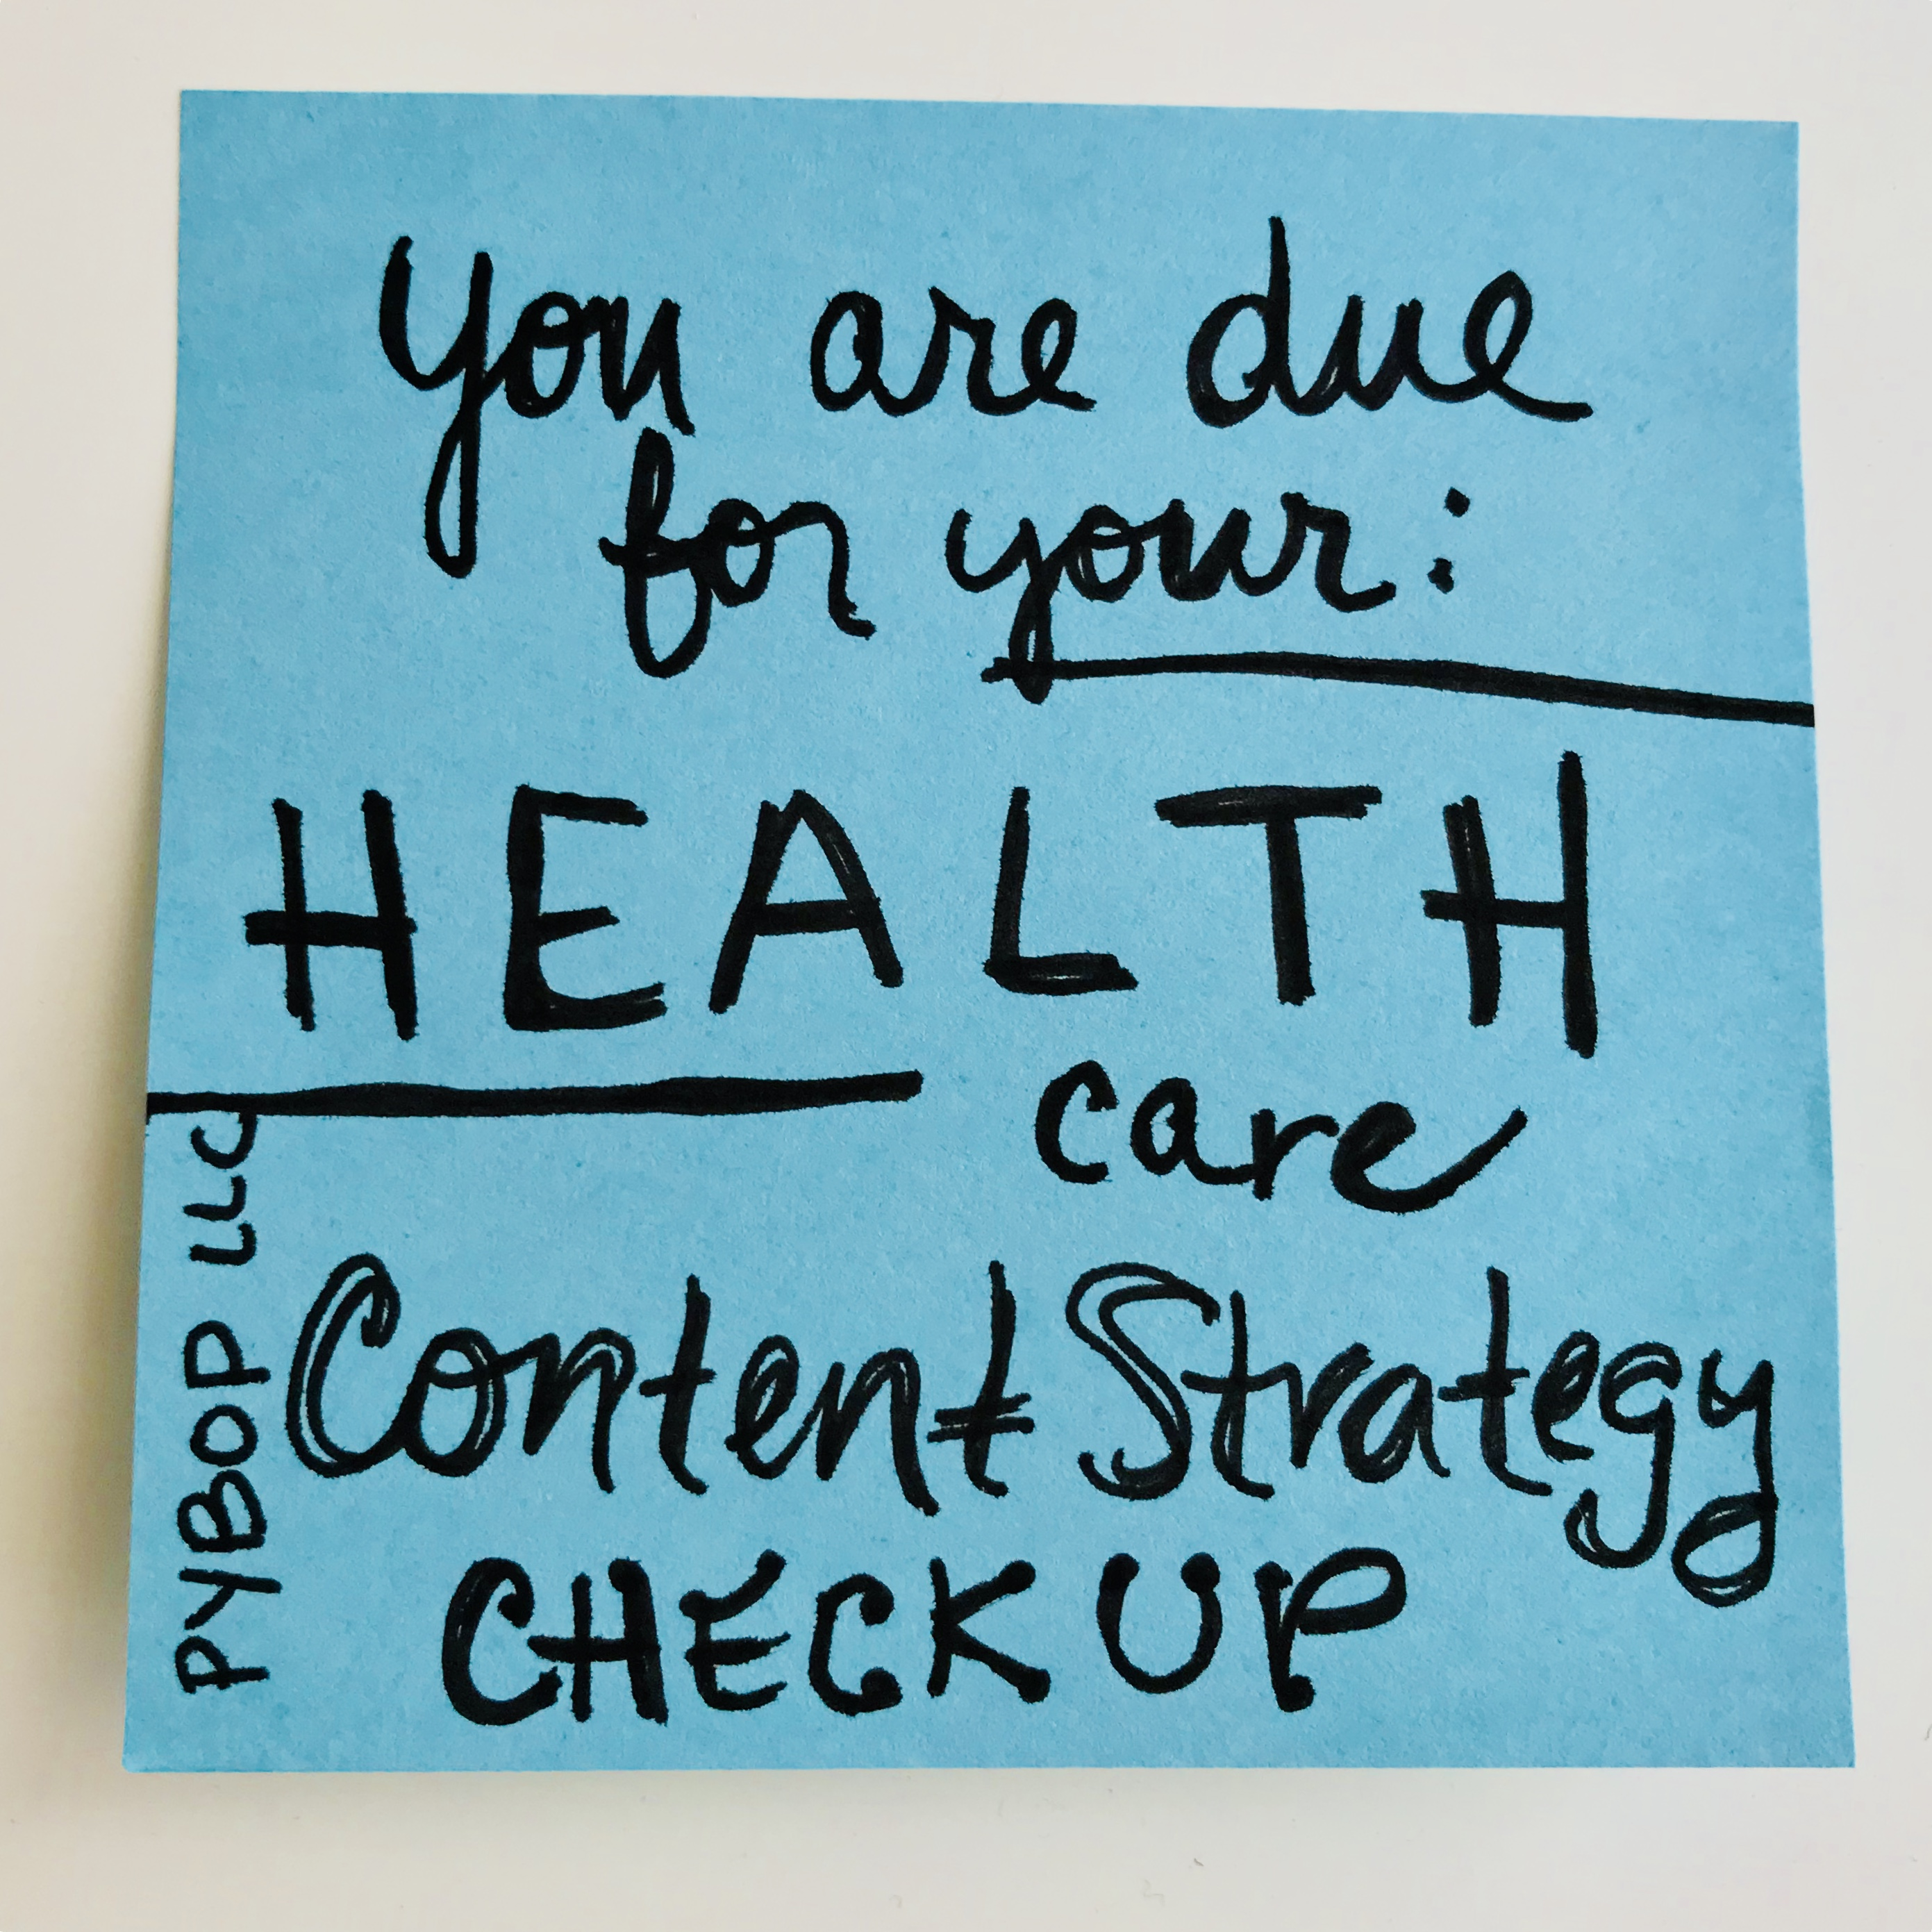 How is content strategy for health organizations different?